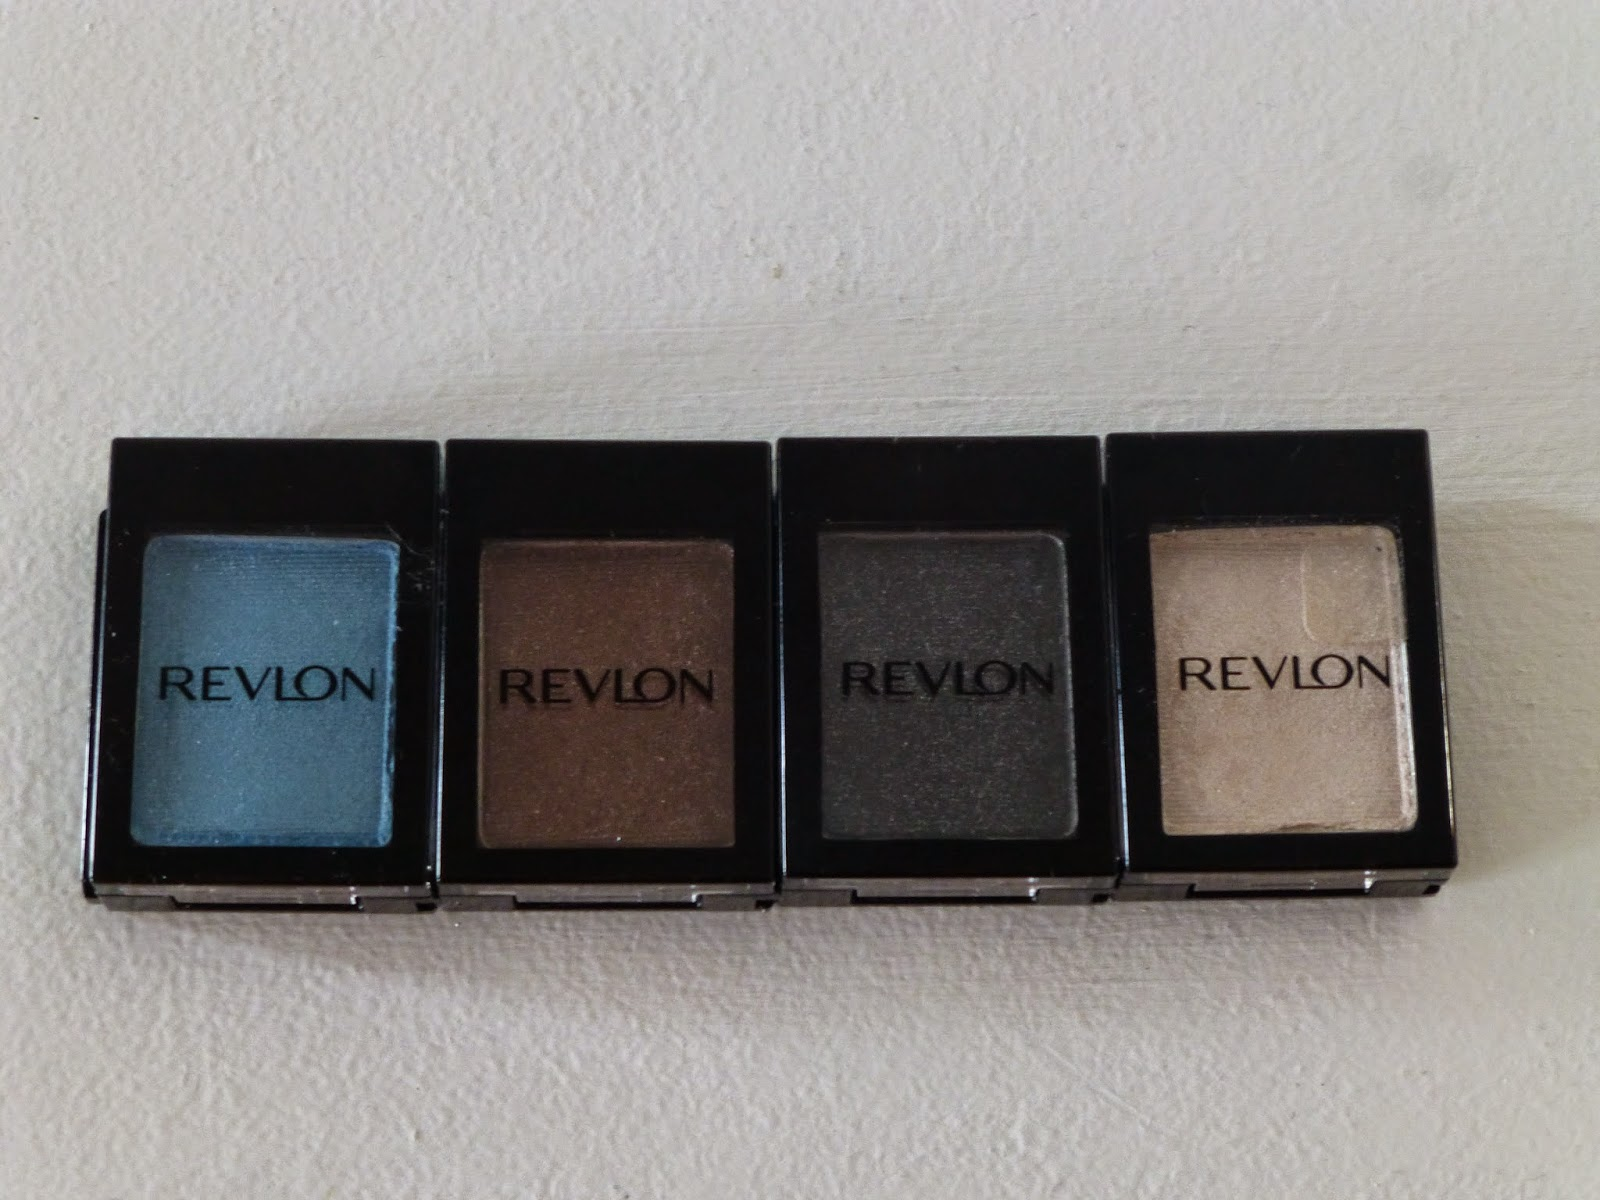 Revlon_Colorstay_Shadowlinks_Peacock_Java_Oxny_Oyster_eyeshadow_review